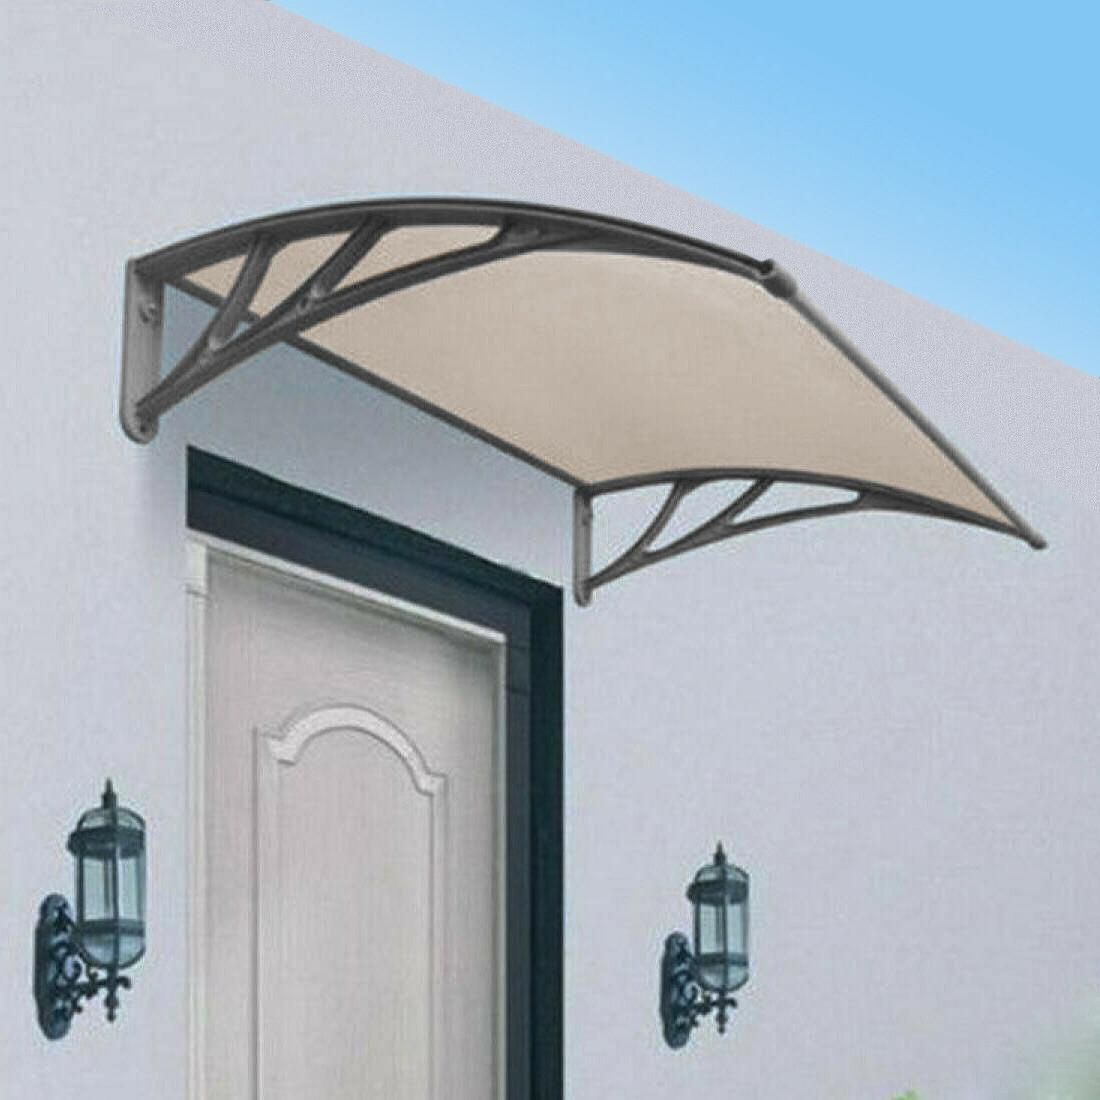 durable solid polycarbonate awnings uv protected